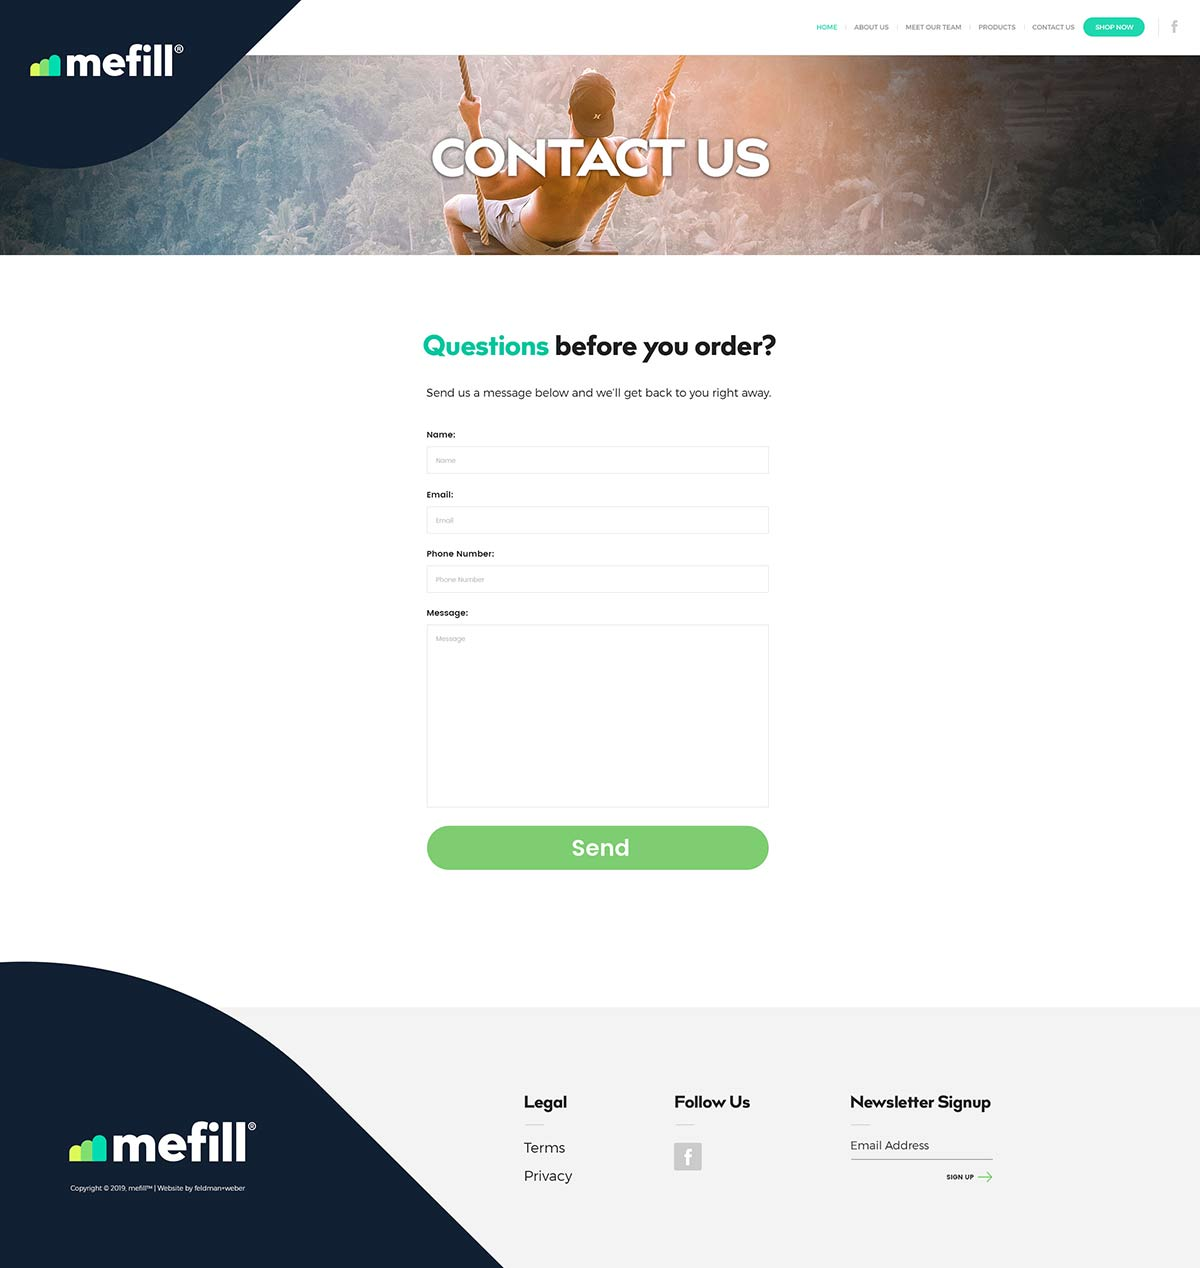 Mefill Contact page